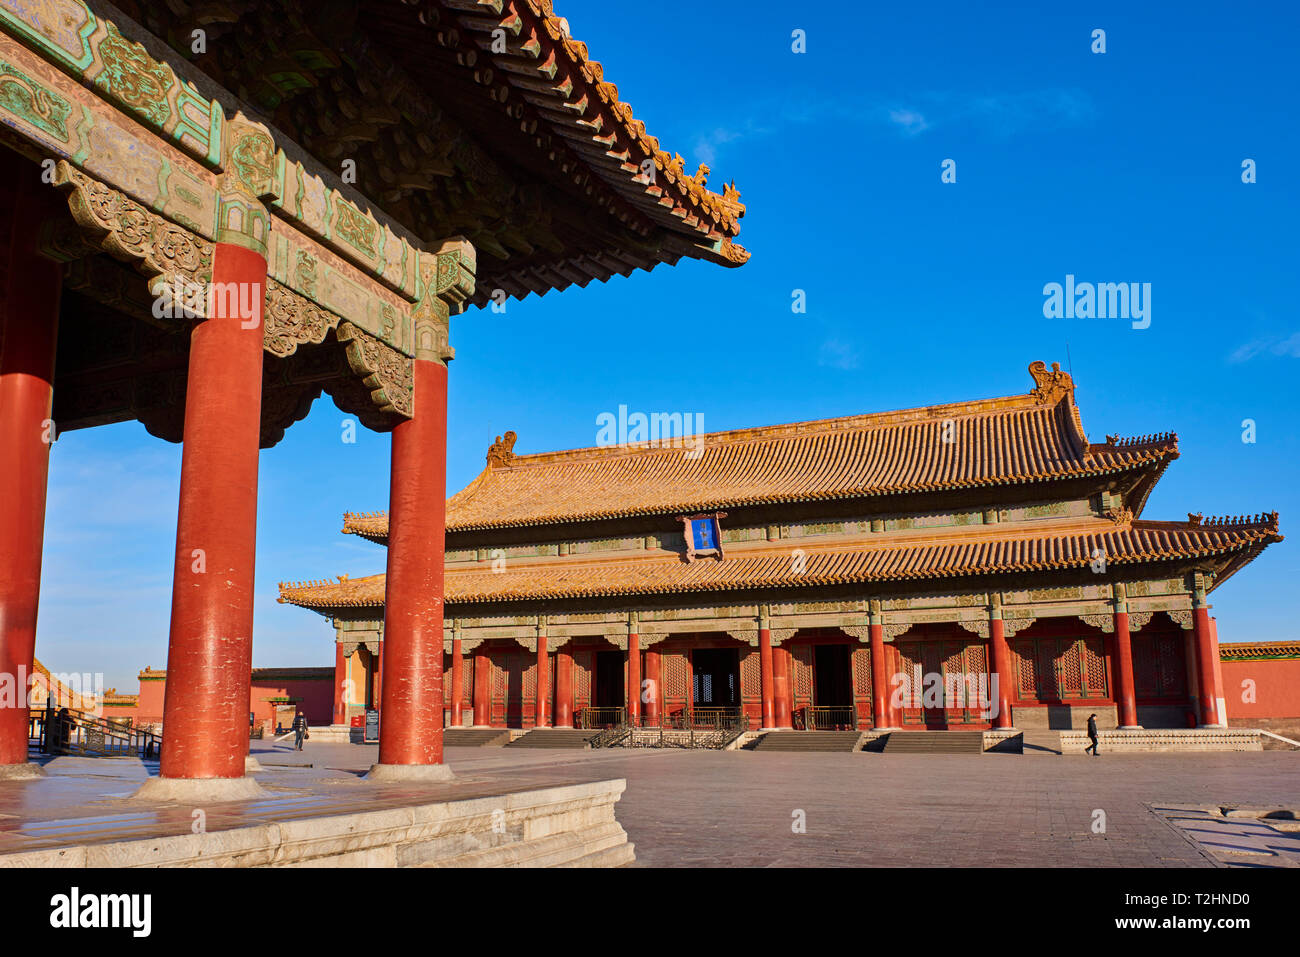 Hall of Preserving Harmony (in the background) with Hall of Central Harmony, Forbidden City, Beijing, China, East Asia - Stock Image